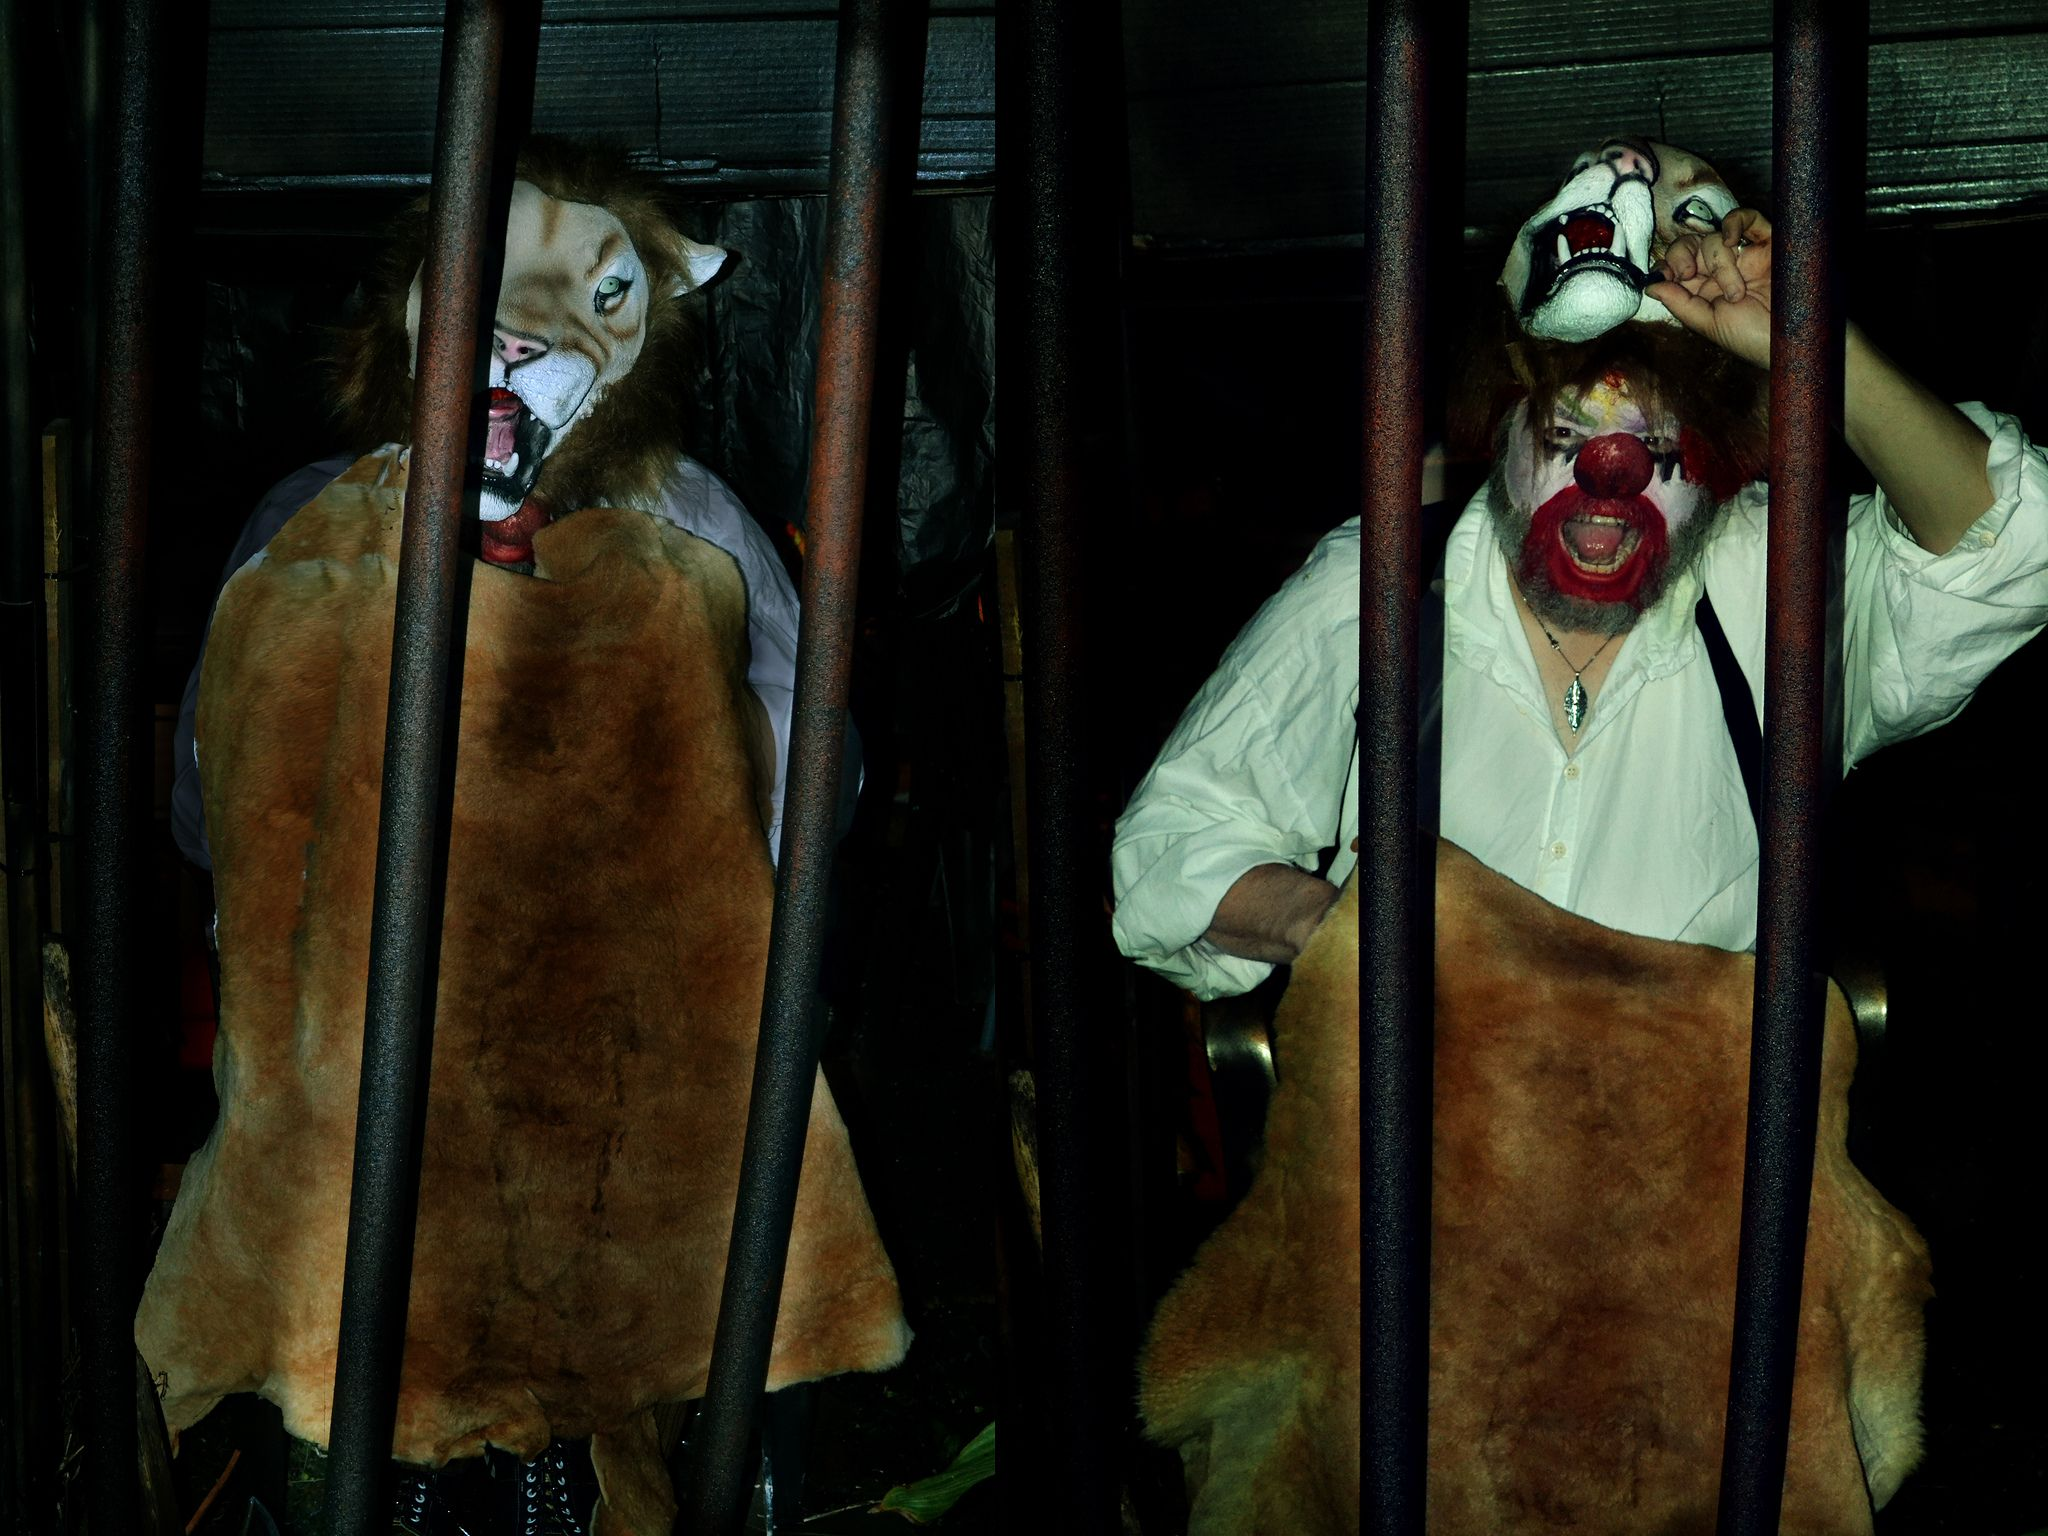 "https://flic.kr/p/hbkKw7 | Not Lion | ""Y'all think I'm a Lion? I""M NOT A LION! I""M BEAUX BEAUX THE CLOWN AND I""M GONNA MAKE YOU A CLOWN TOO OR CHOP YOUR HEAD OFF!"" I had a double headed axe under that fur. and the bars were pipe insulation. When I burst out, people scattered in all directions, dropped candy, dragged kids, and peed themselves. It was our best All Hallows E'en show ever. Had a great cast and crew! We had people lined up to go through even in the rain. ..."